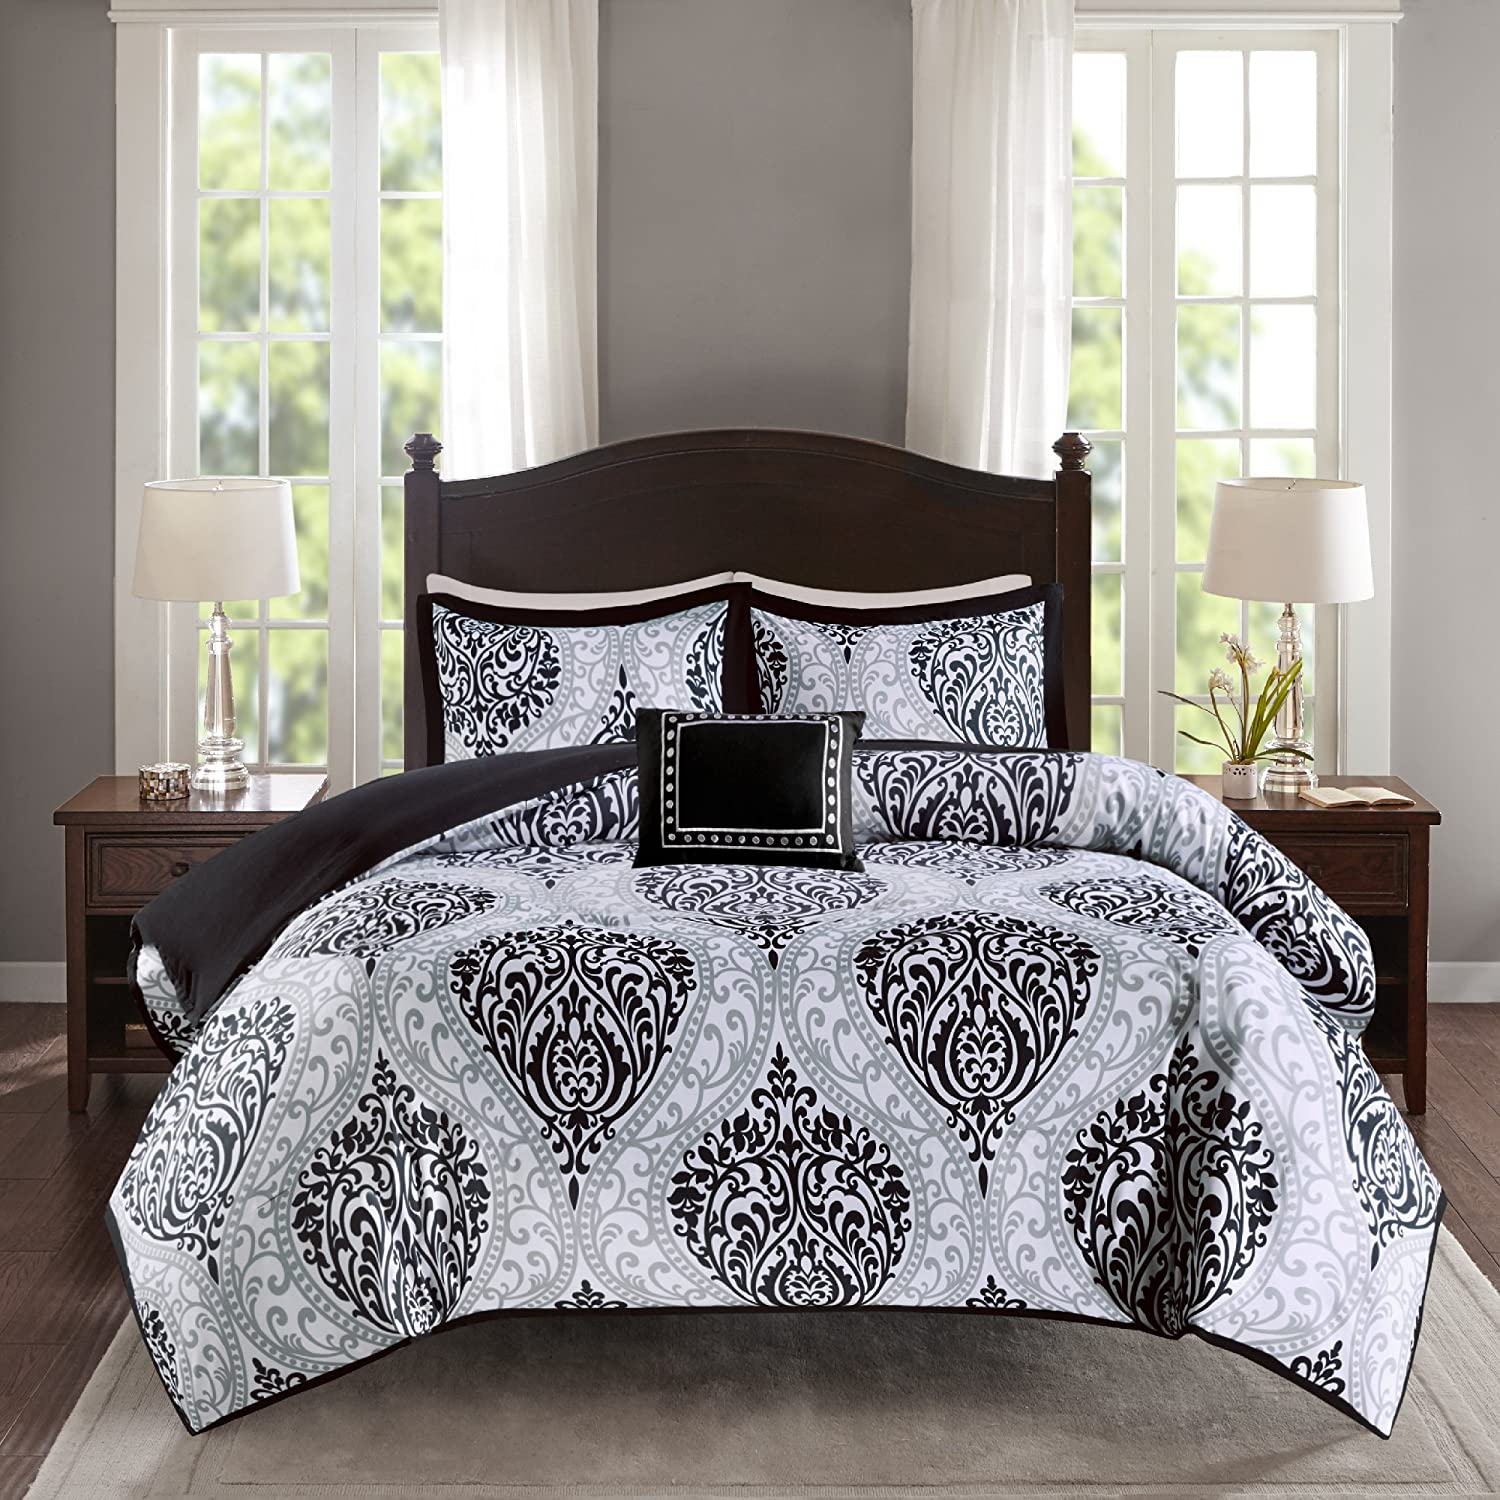 Black and White - Printed Damask Pattern comforter